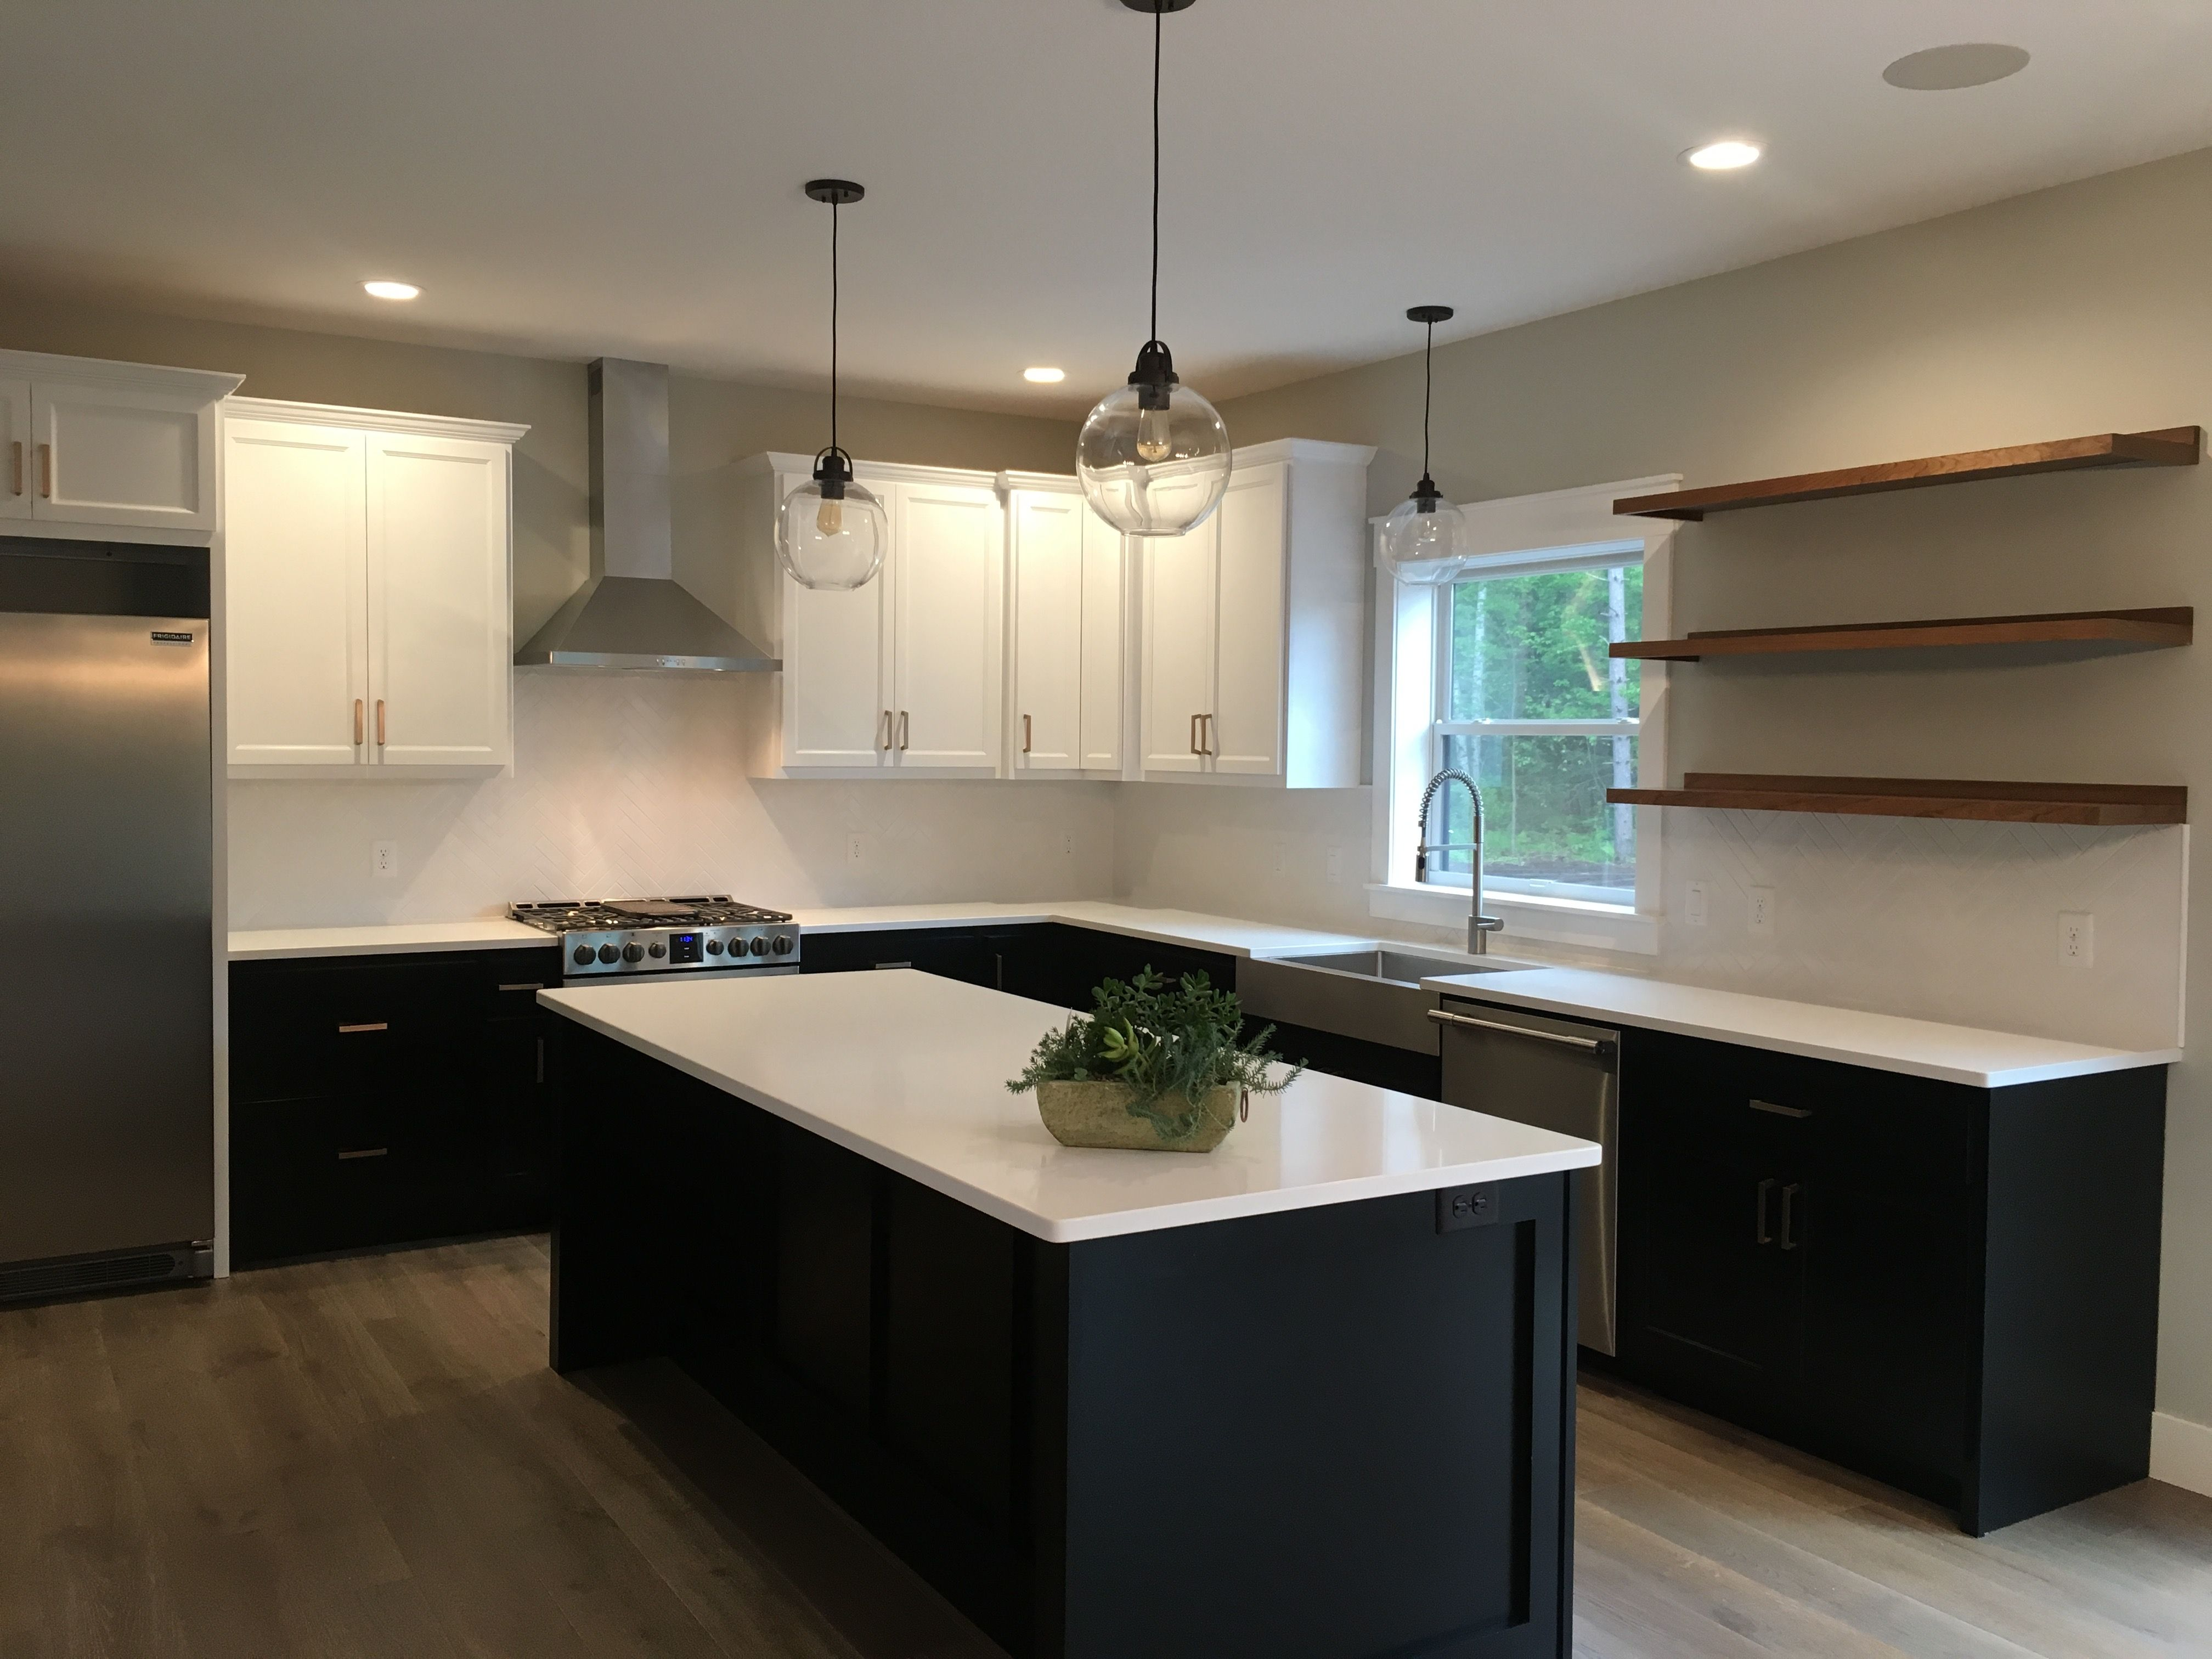 modern kitchen   c&m home builders and real estate   eau claire, wi